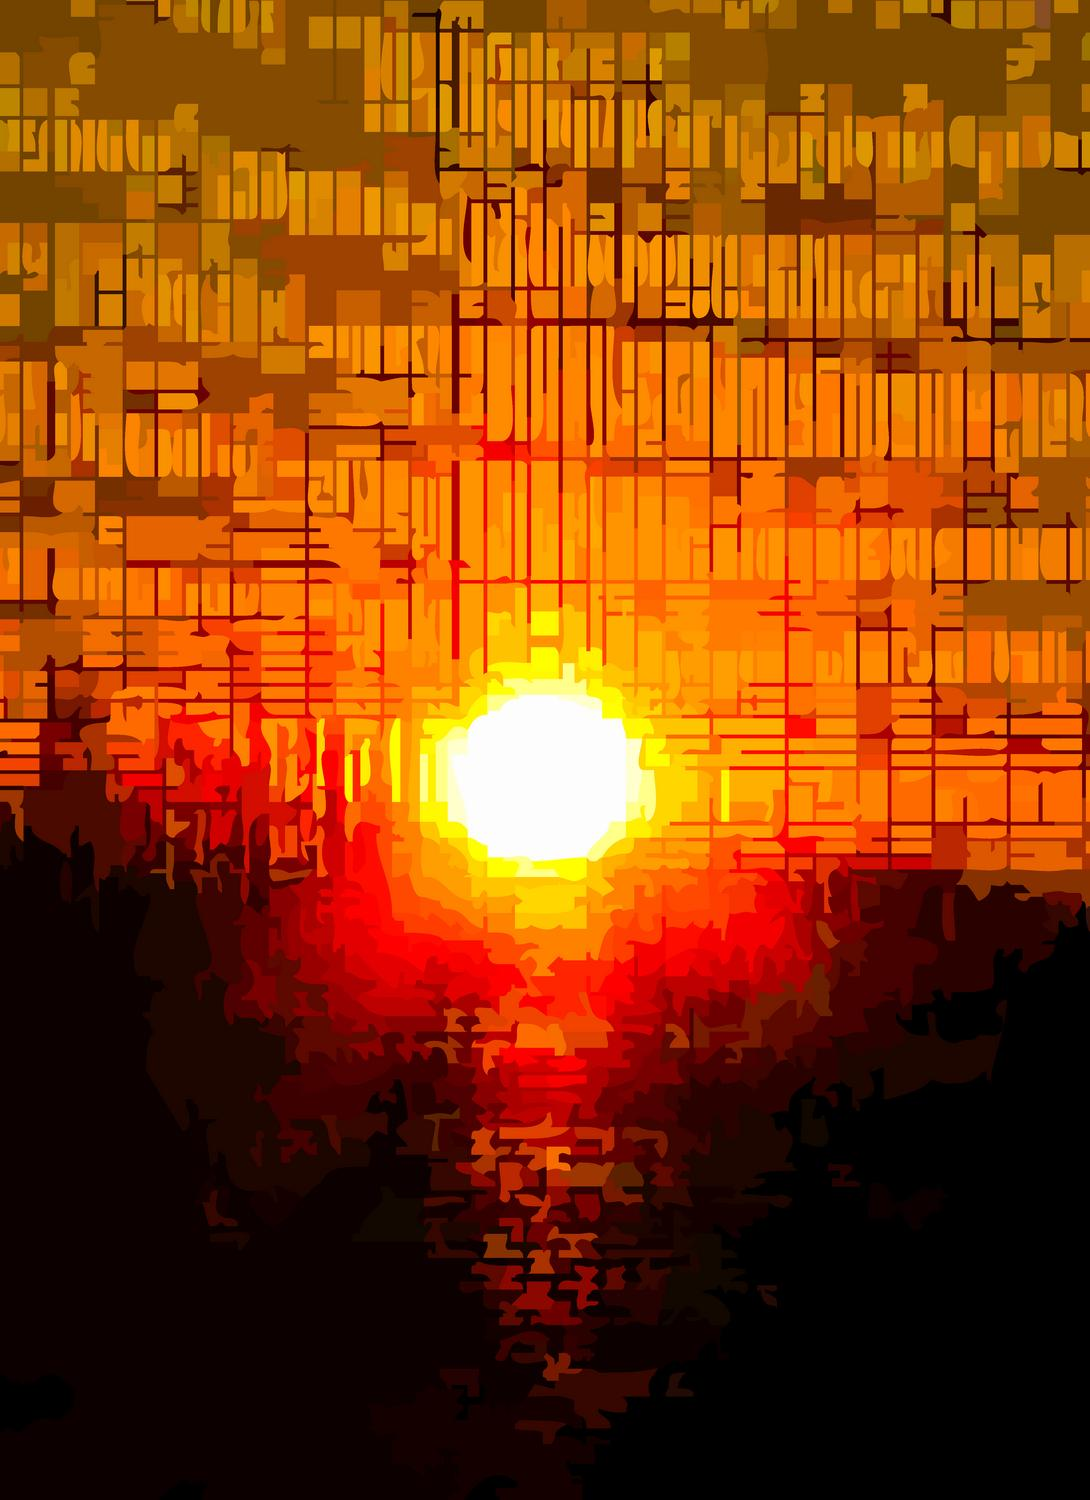 sunset through the screen on the porch #1 - This is the most powerful one in the series Sunset screen shot #1</center></Center><p></p> - Techno-Impressionist Museum - Techno-Impressionism - art - beautiful - photo photography picture - by Tony Karp